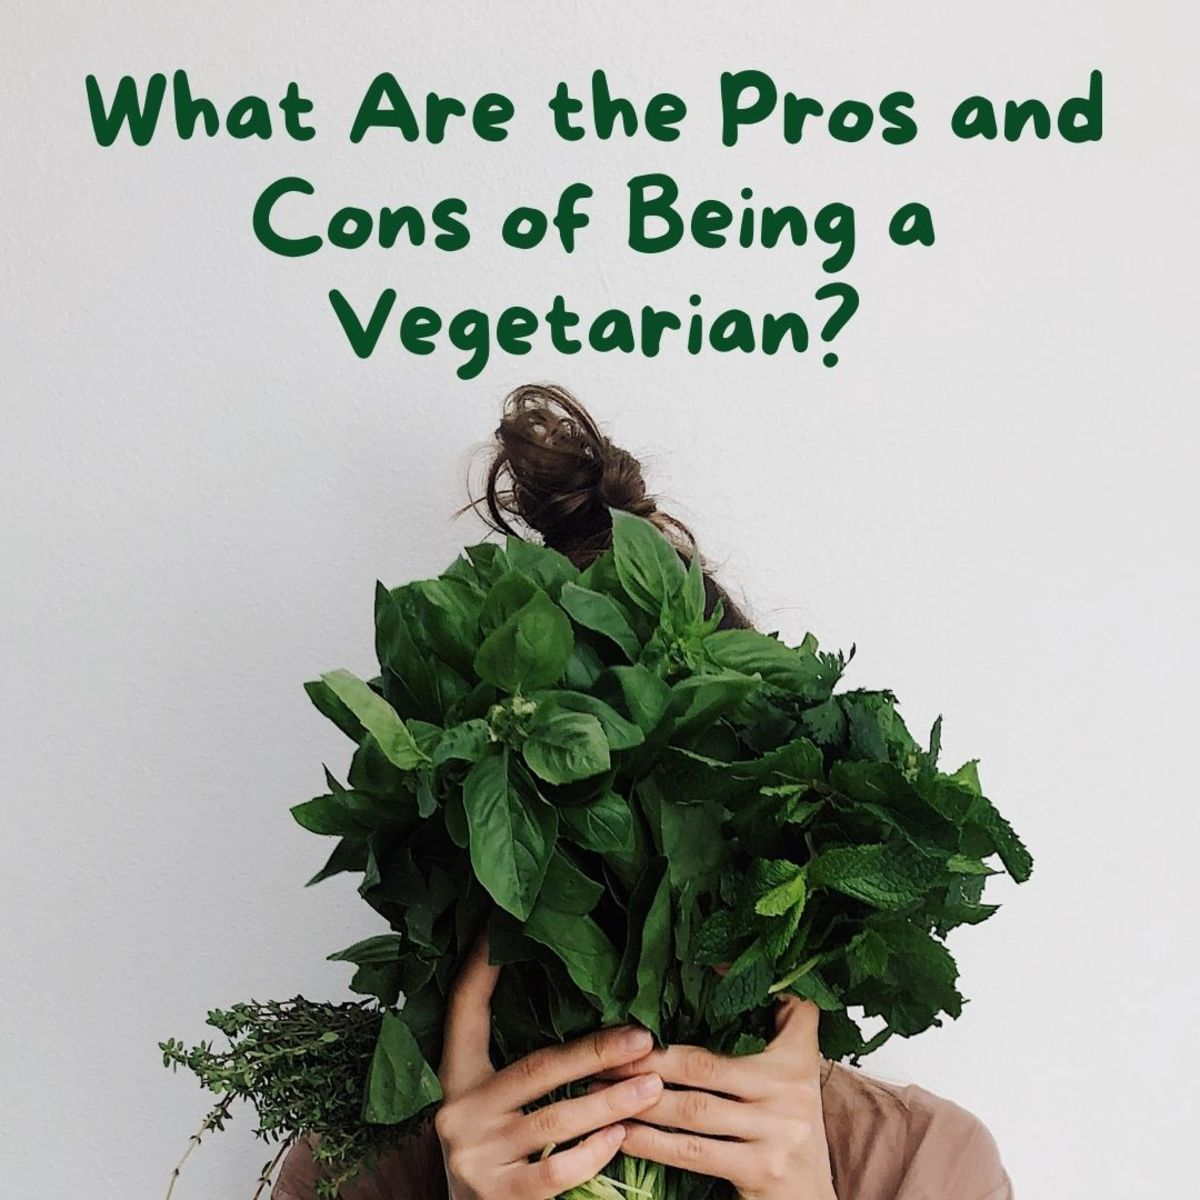 What are the pros and cons of choosing a vegetarian lifestyle?